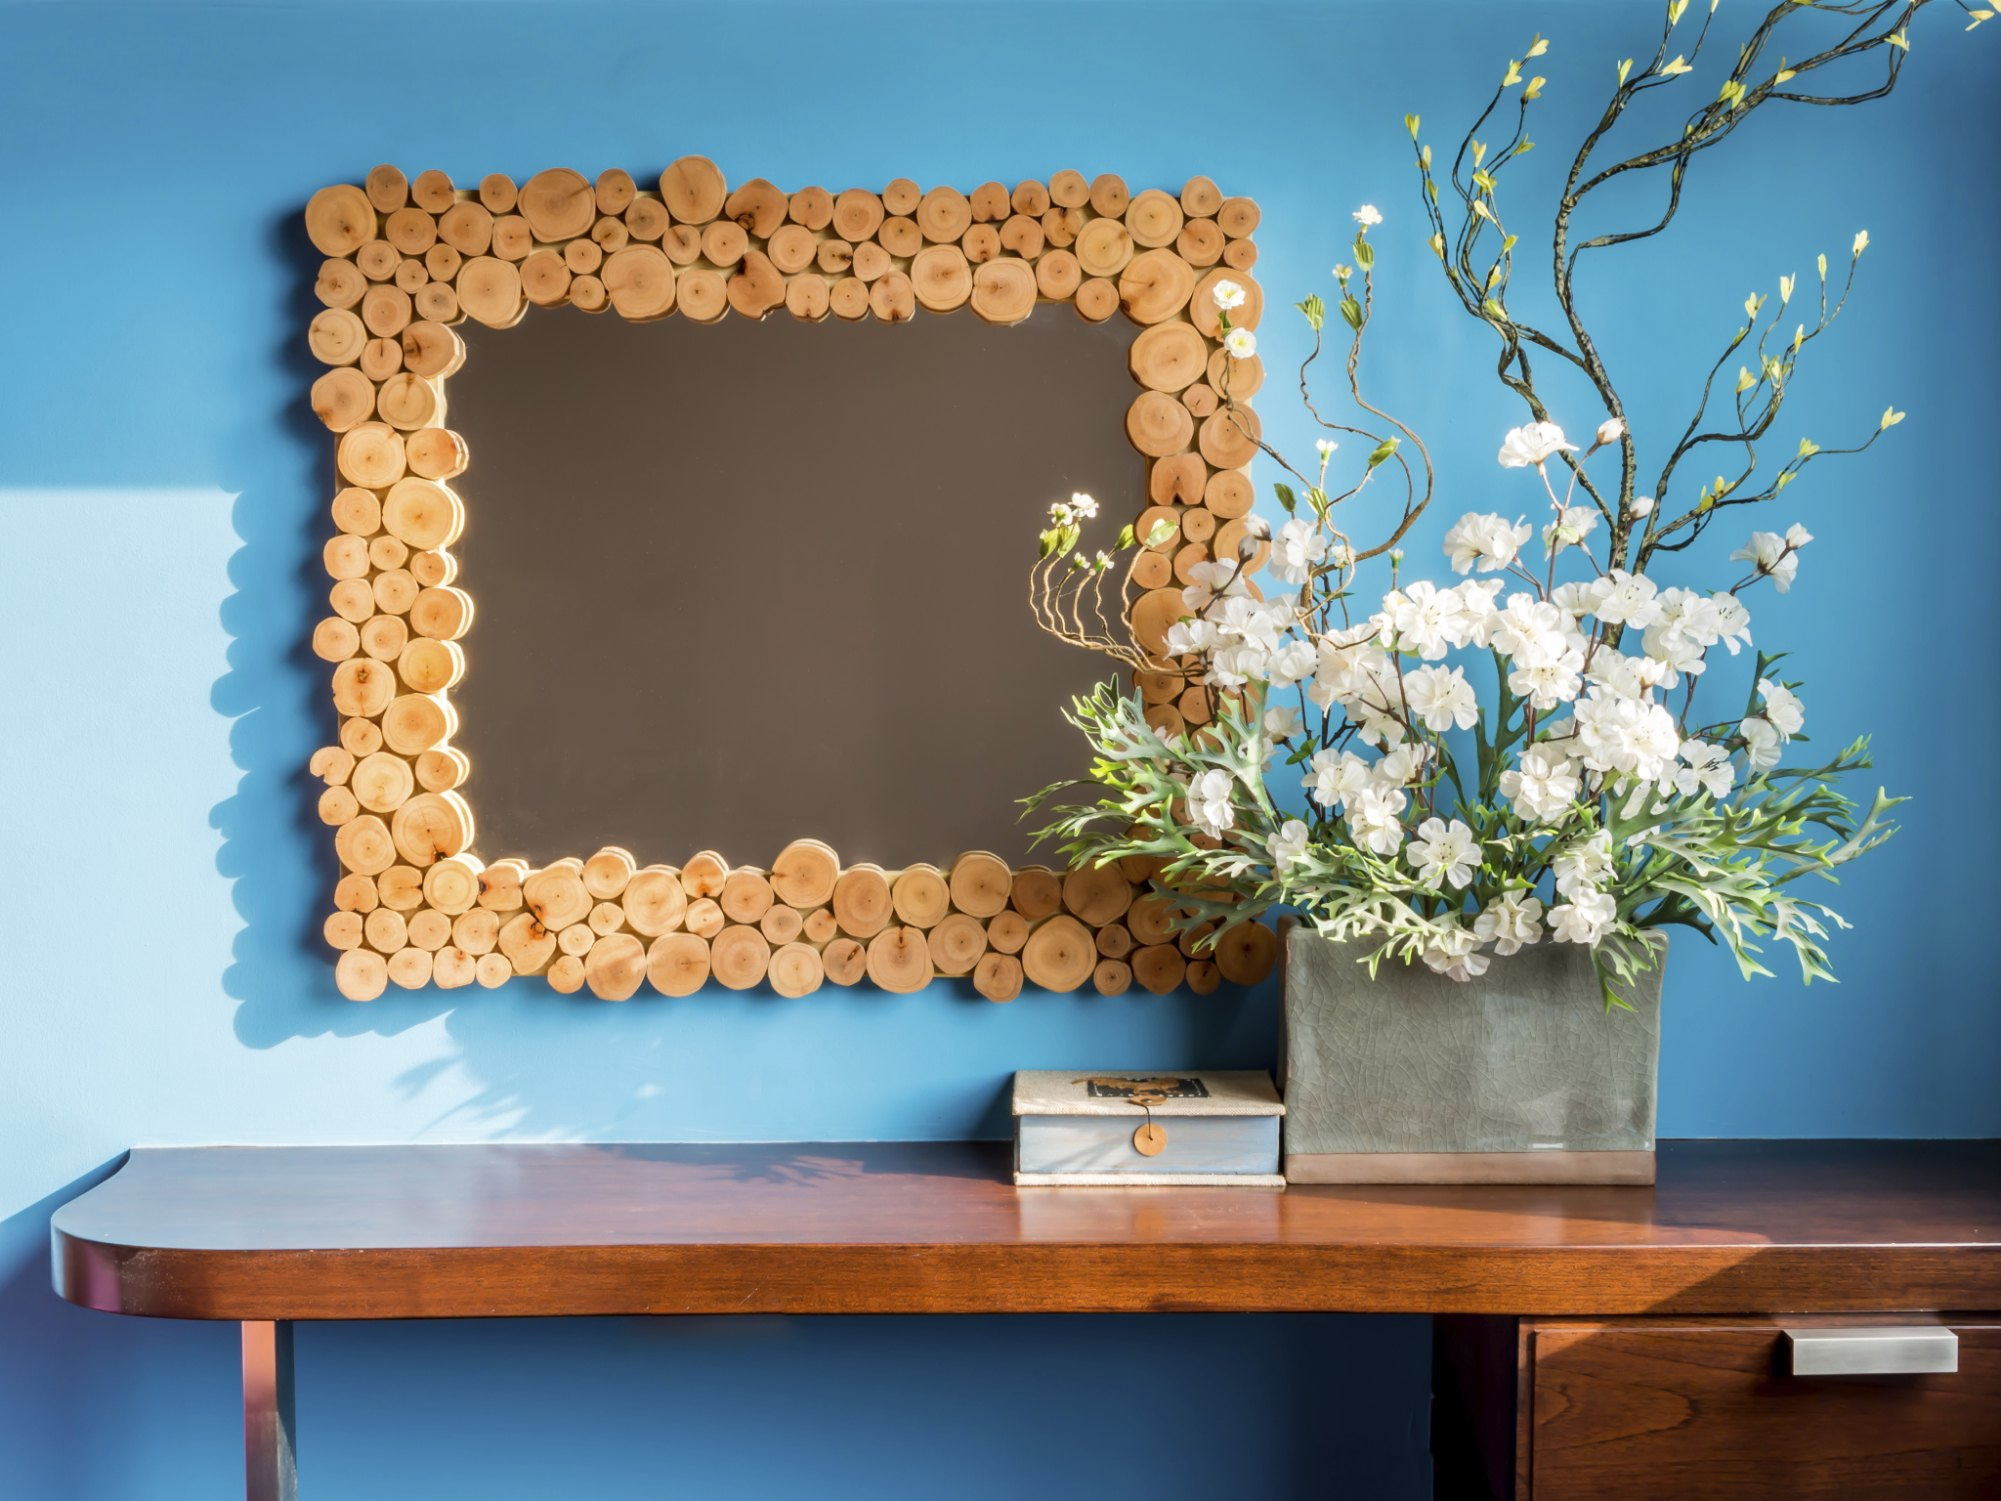 How To Use Mirrors To Increase Light For Plants Ehow